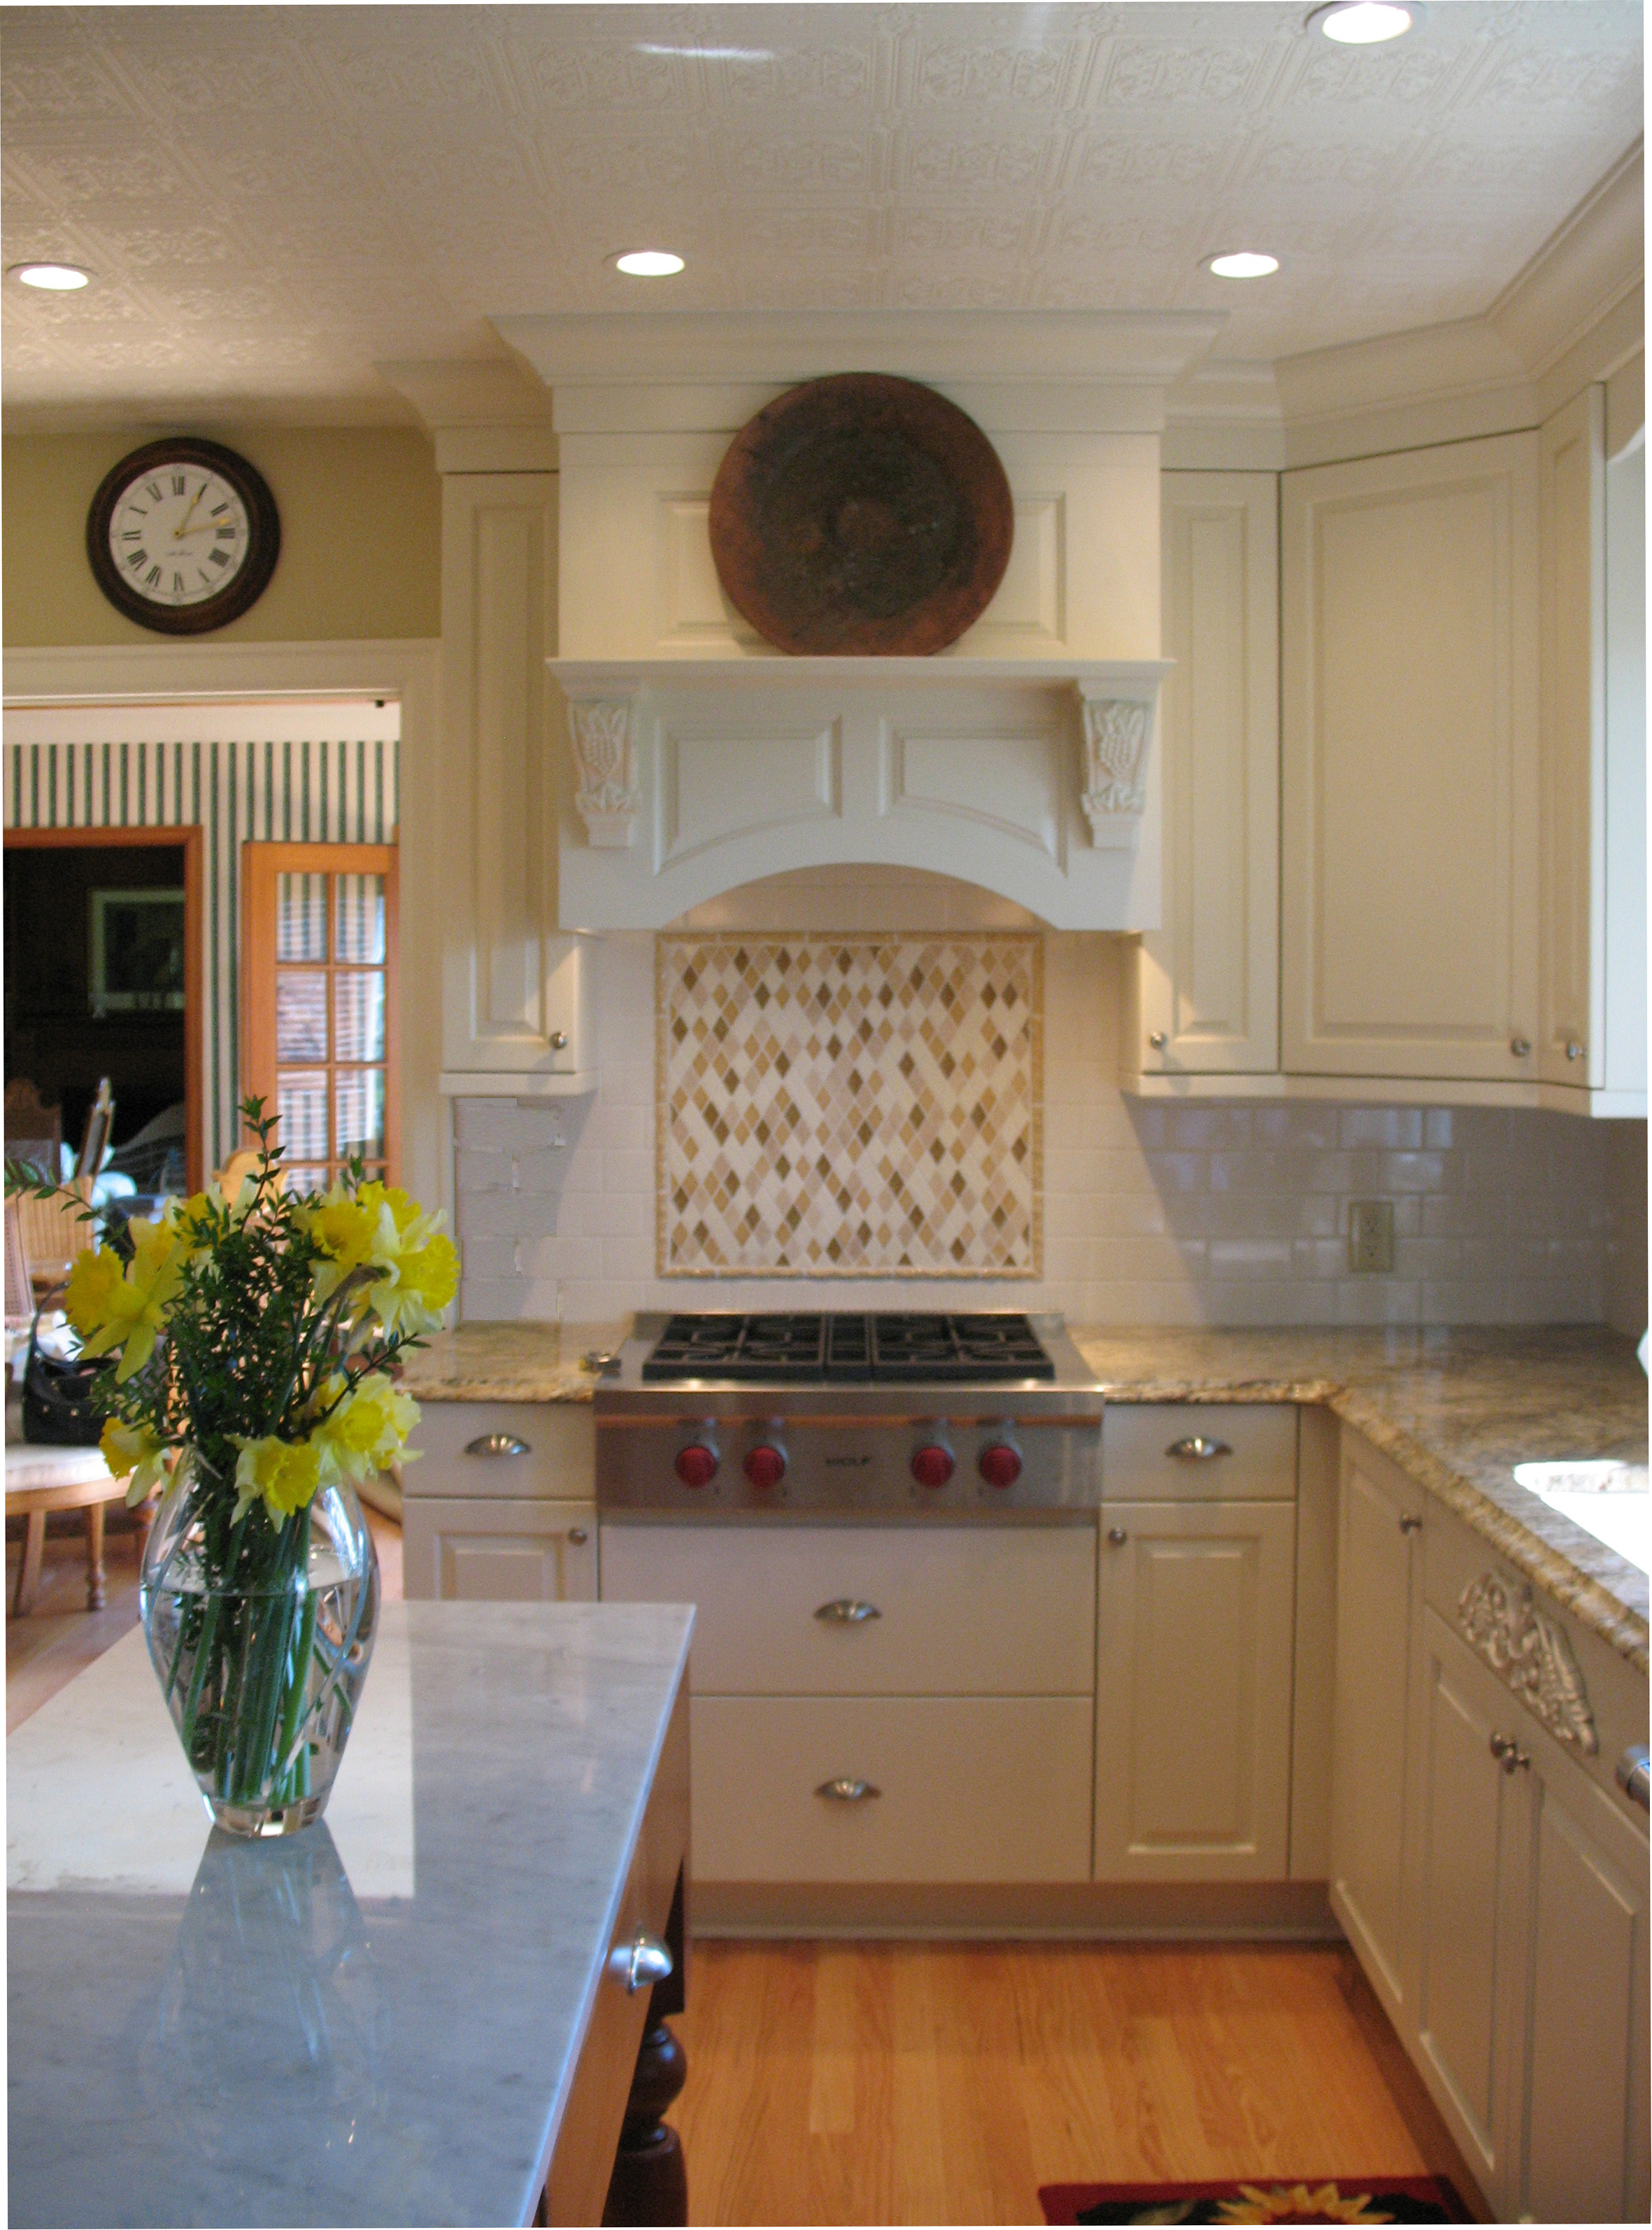 French Country Kitchen Stove and Backsplash